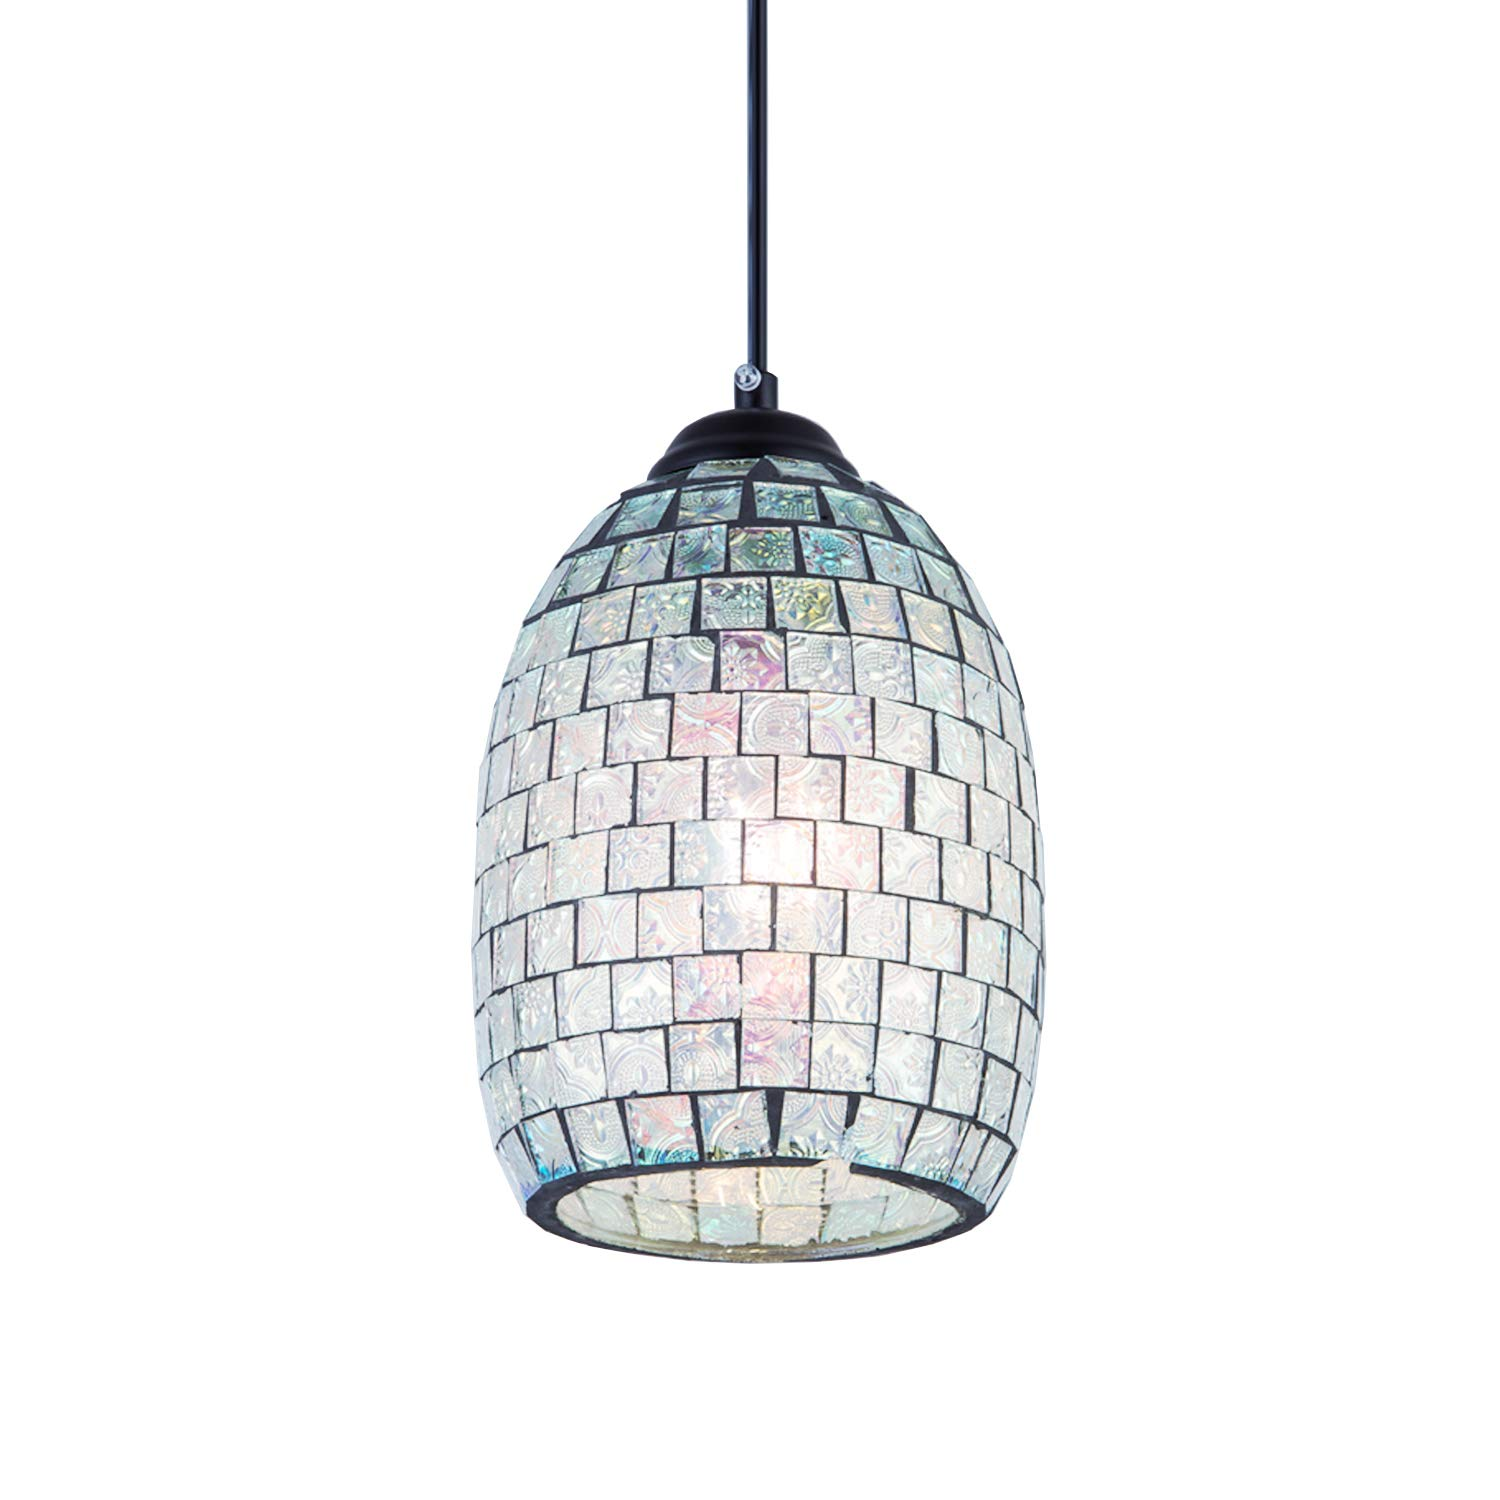 Modern Mini Pendant Lighting Fixture, Mosaic Ceiling Lamp Mediterranean Decorative Plating Colorful Dimmable Cord with Hand Crafted Shell Glass for Restaurant, Cafe, Dining Room, Indoor, 1-Pack